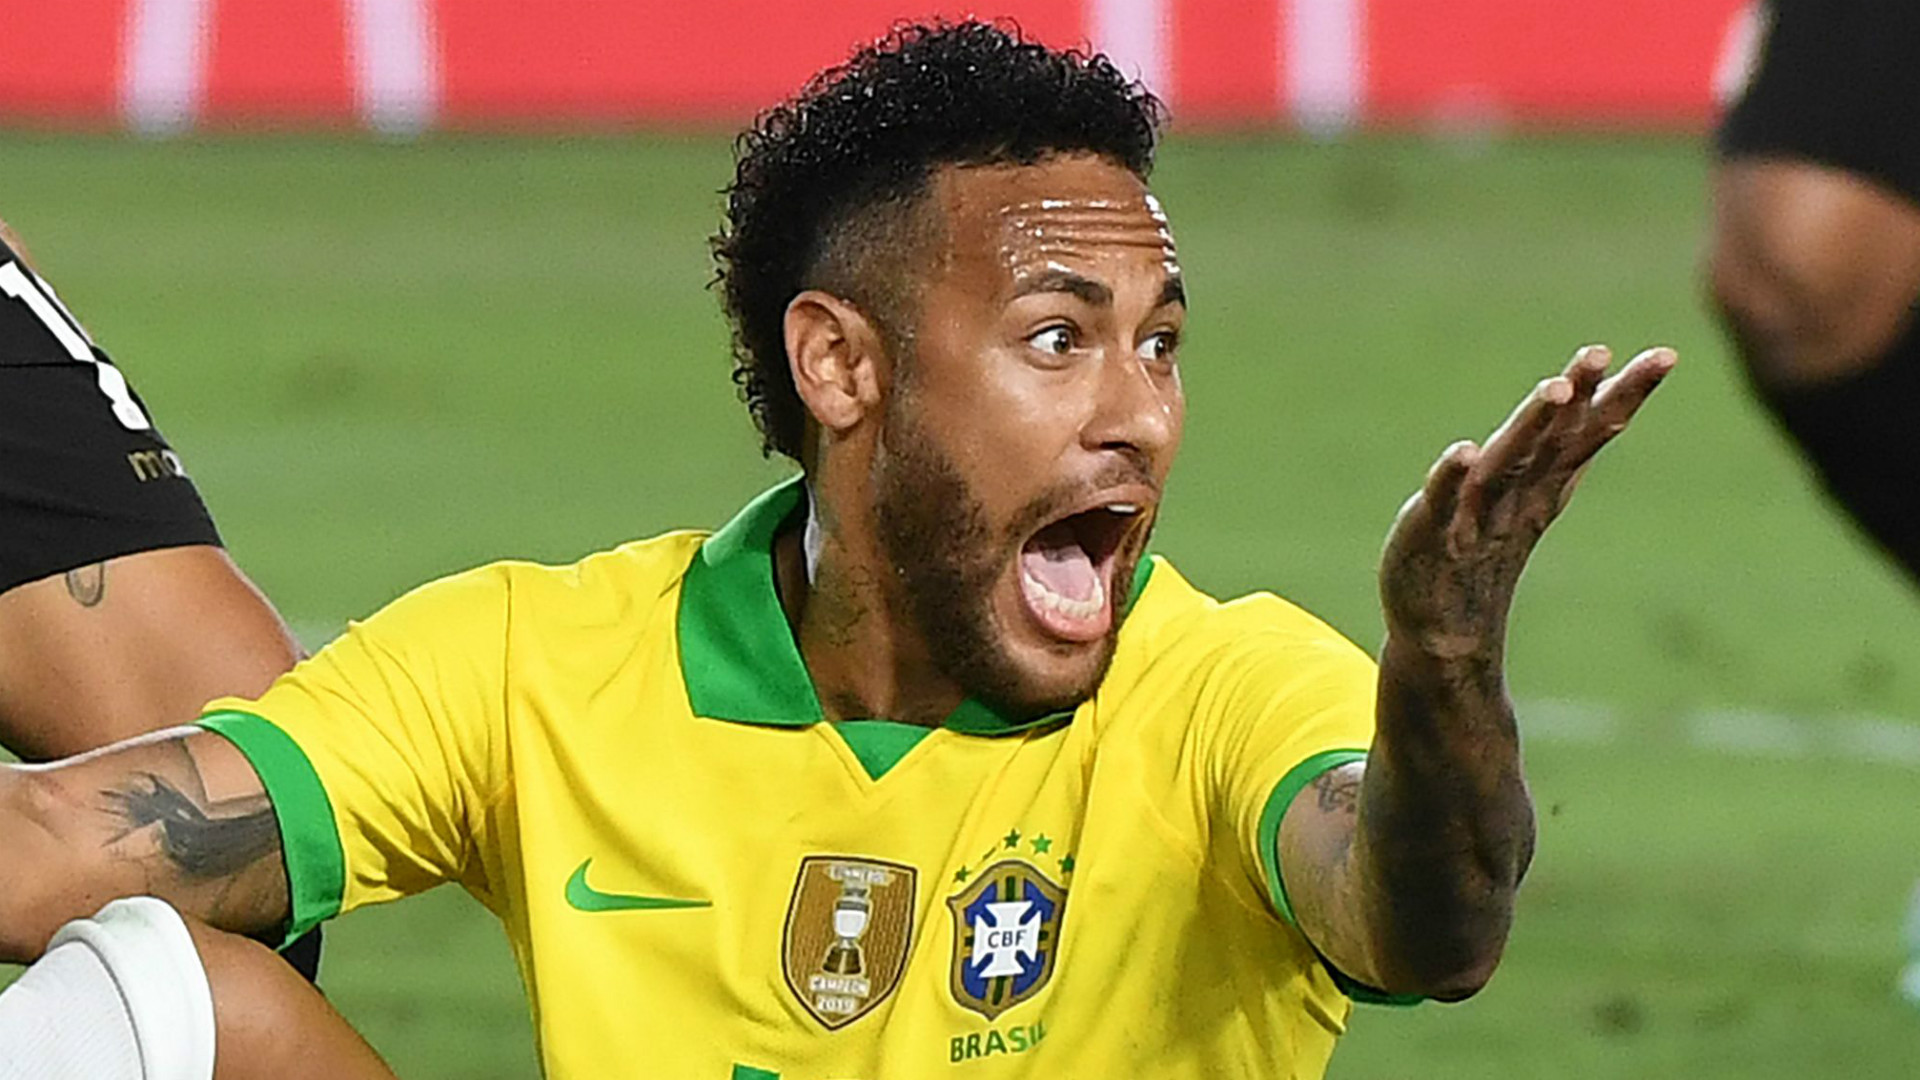 PSG star Neymar out for four weeks after suffering hamstring injury with Brazil